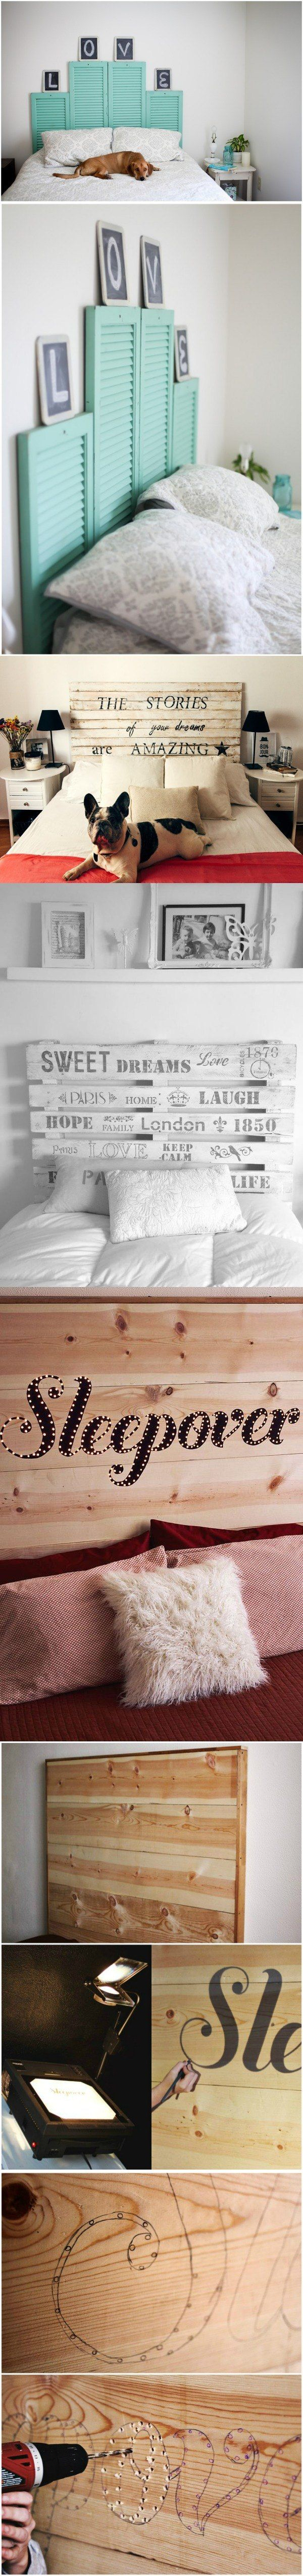 pin von muy ingenioso auf diy ideas pinterest wohnideen wohnen und kinderzimmer. Black Bedroom Furniture Sets. Home Design Ideas